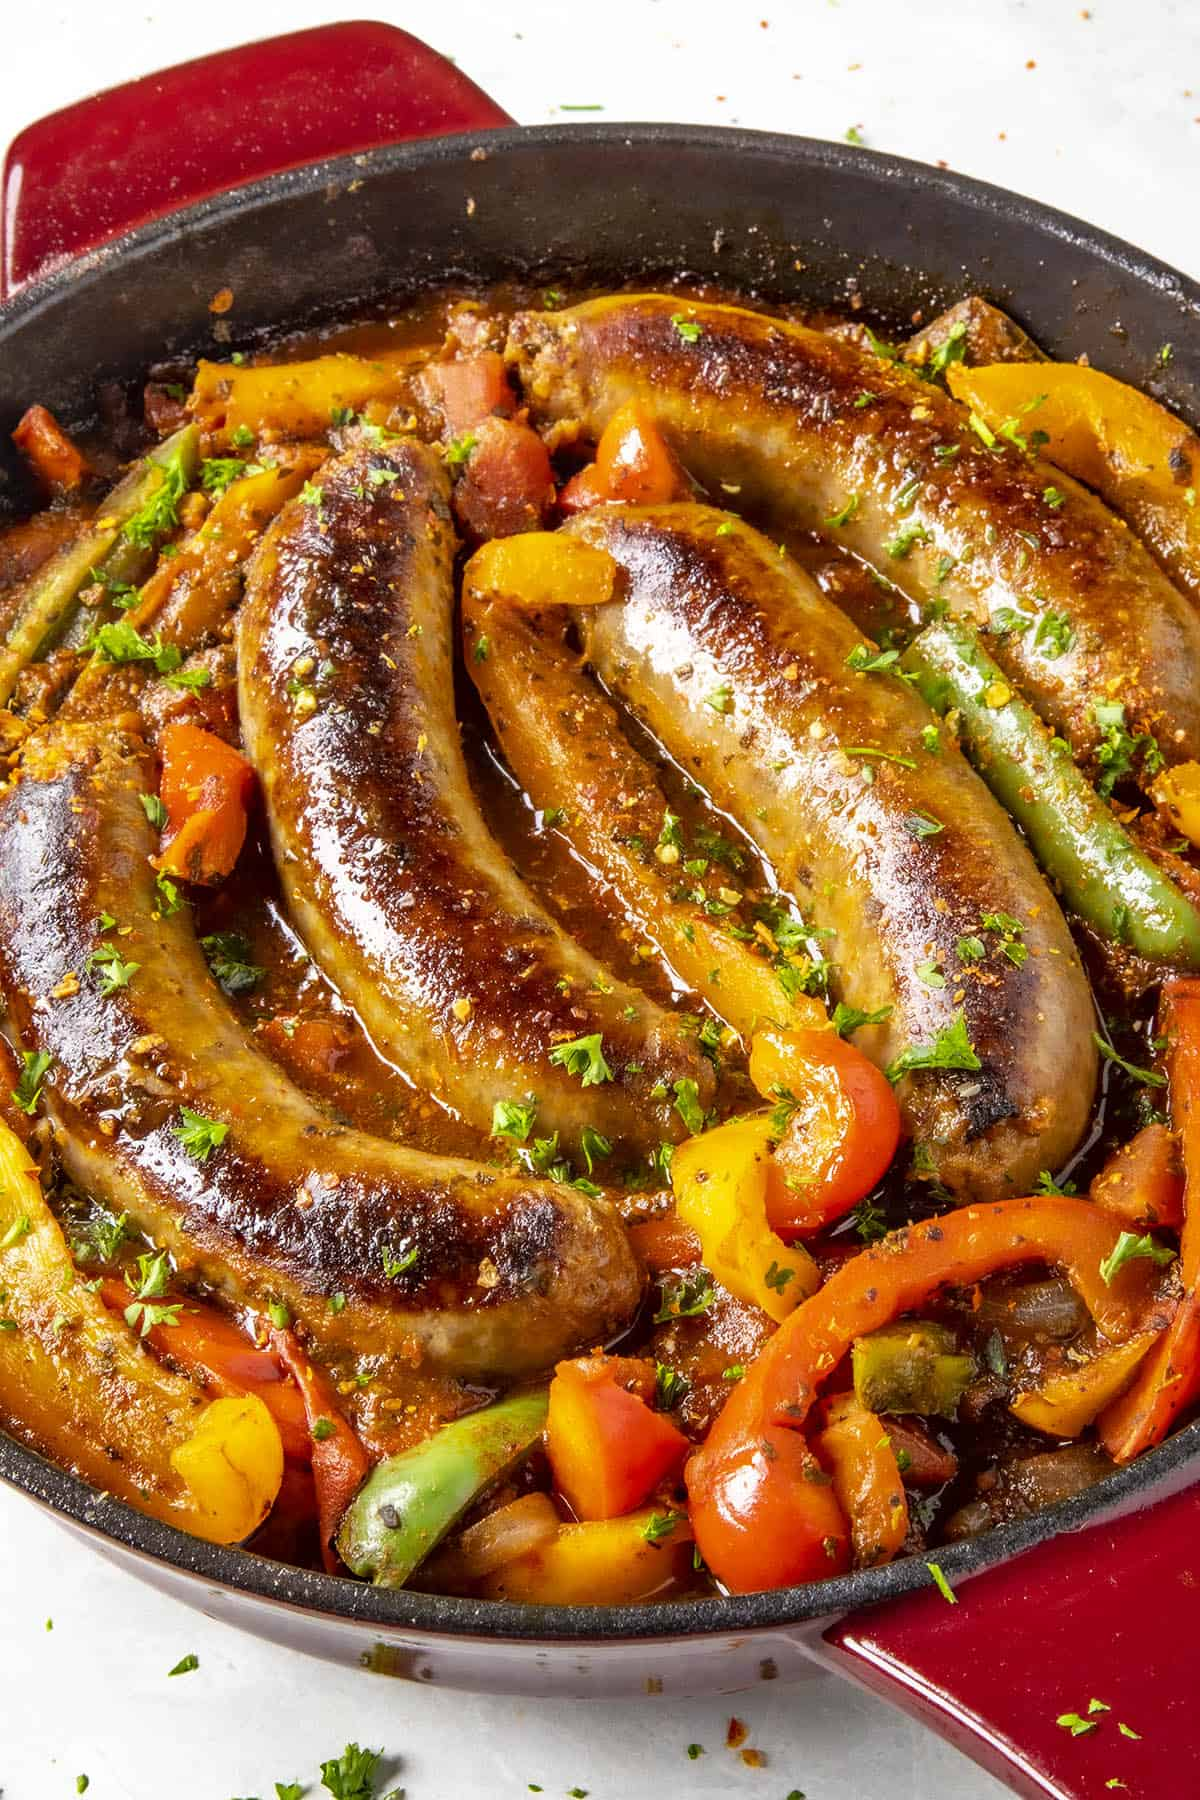 Sausage and Peppers sizzling in a pan